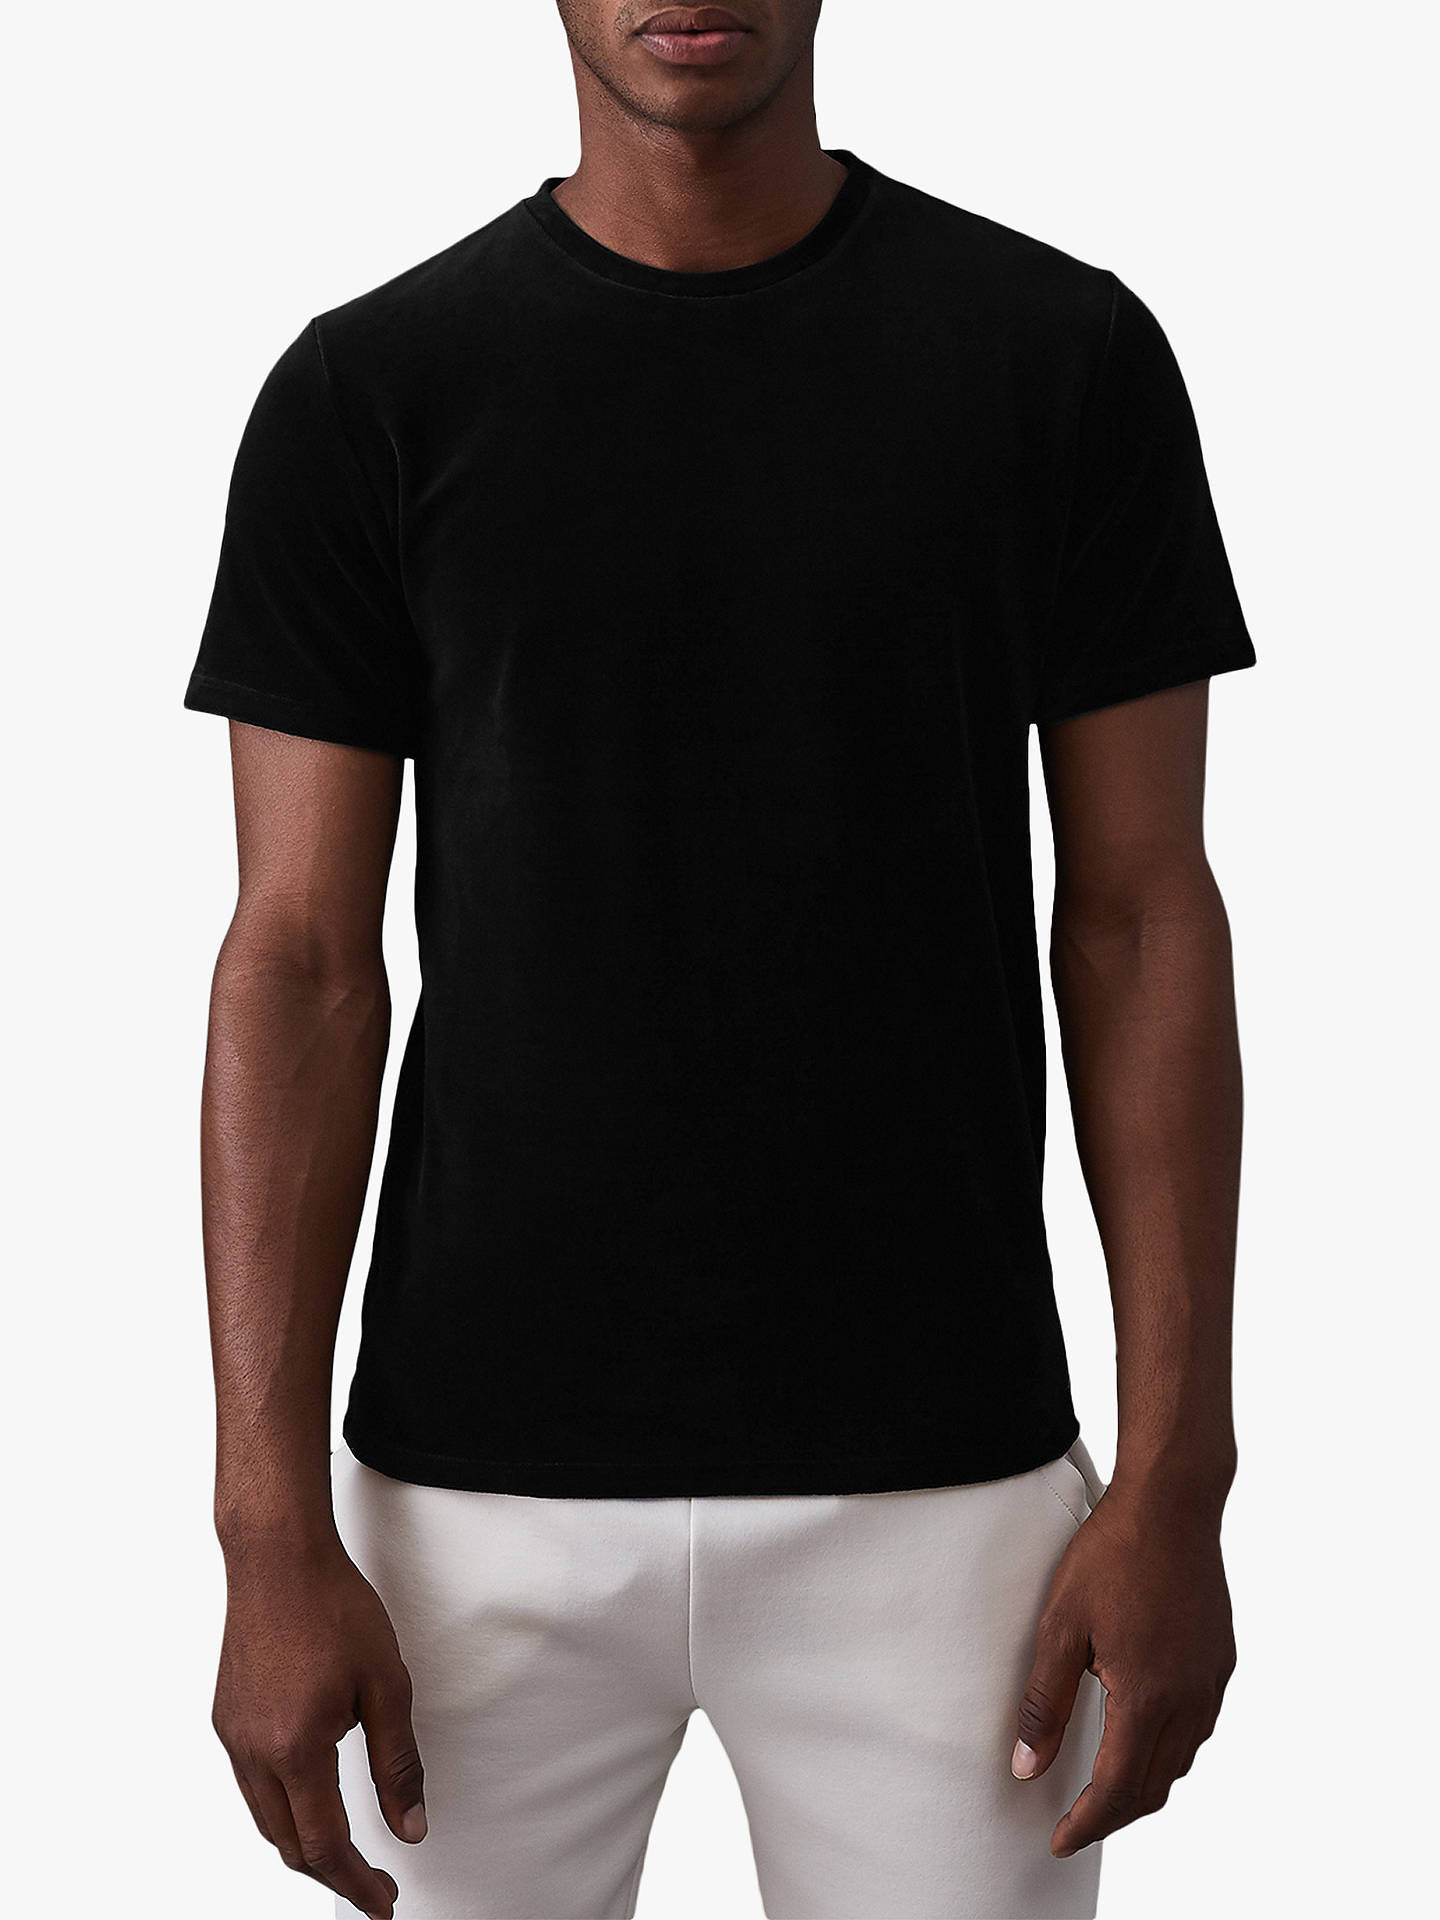 BuyReiss Jupiter Short Sleeve Velour T-Shirt, Black, L Online at johnlewis.com